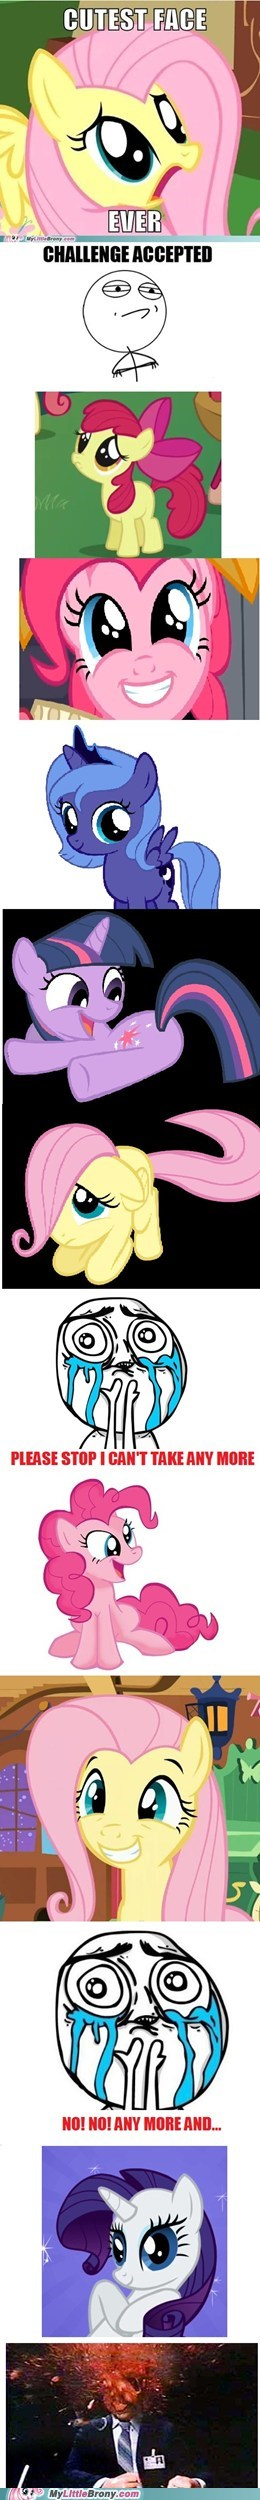 best of week boom Challenge Accepted cuteness overload not anymore ponies - 5683876864